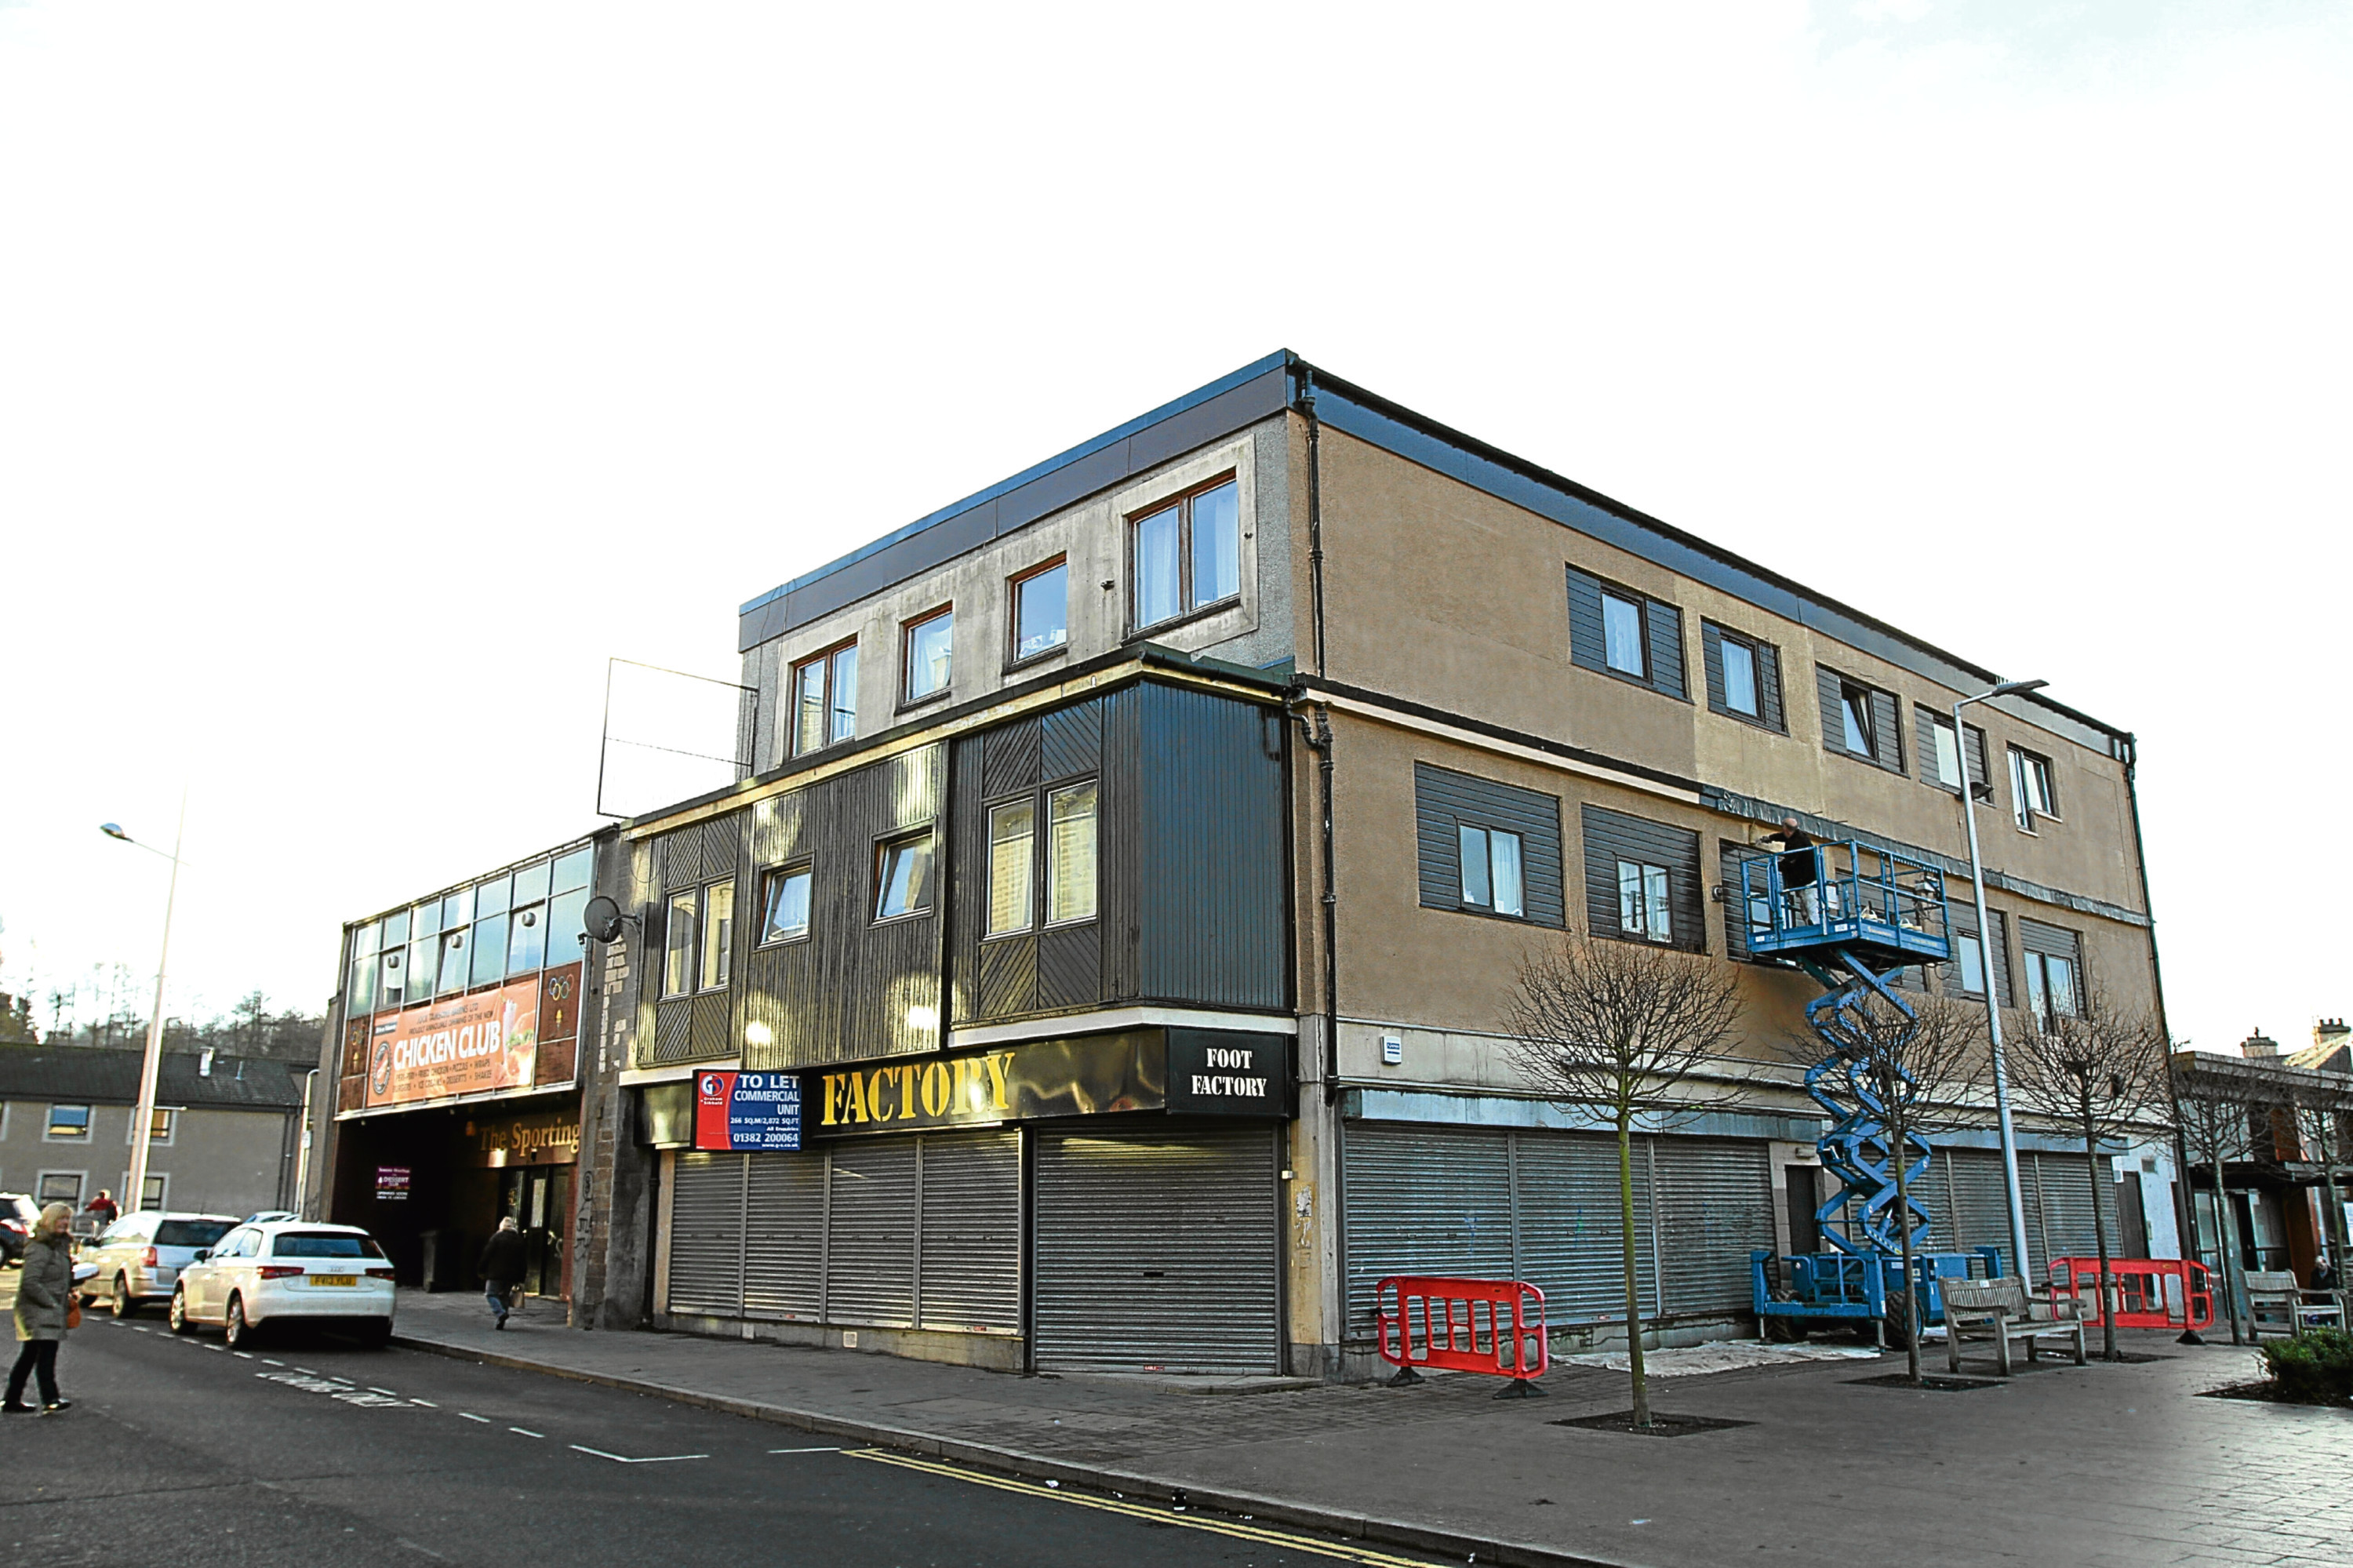 The former Foot Factory unit in Lochee